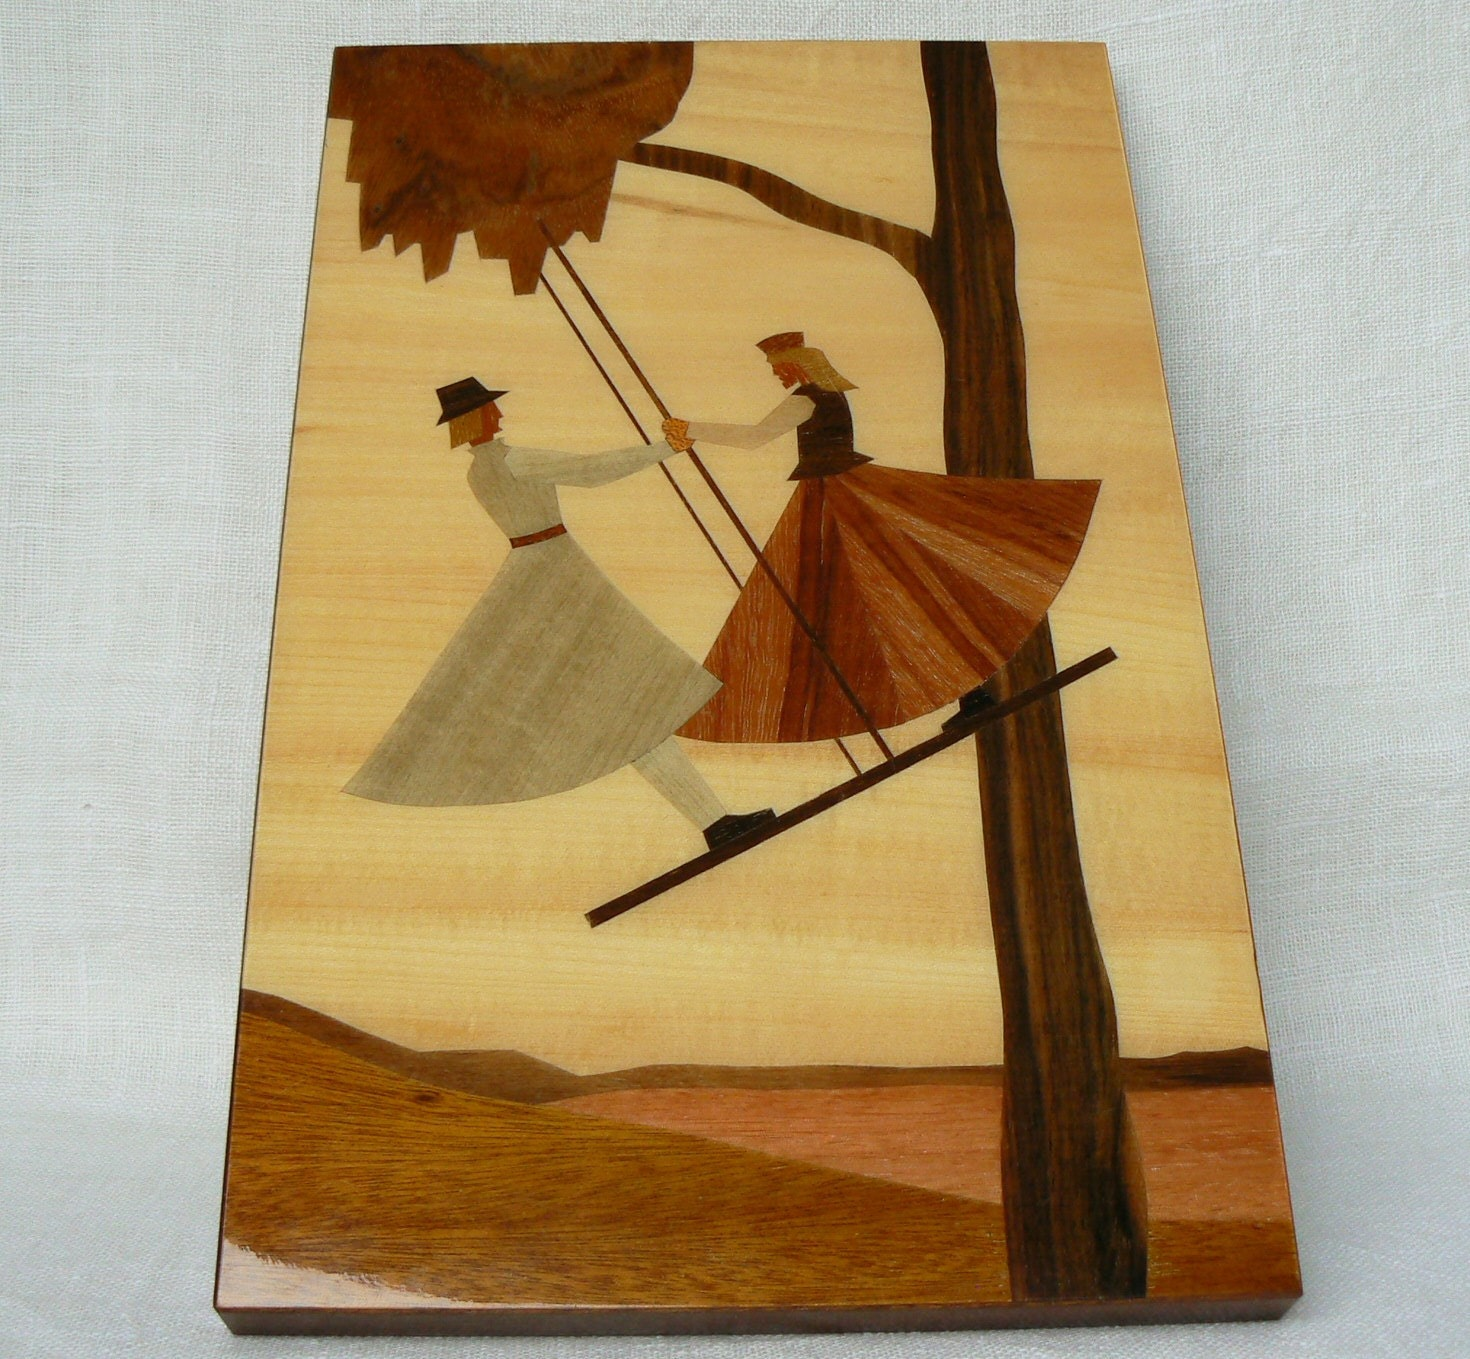 Wood Inlay Wall Decor : Vintage wooden wall decor art picture inlay